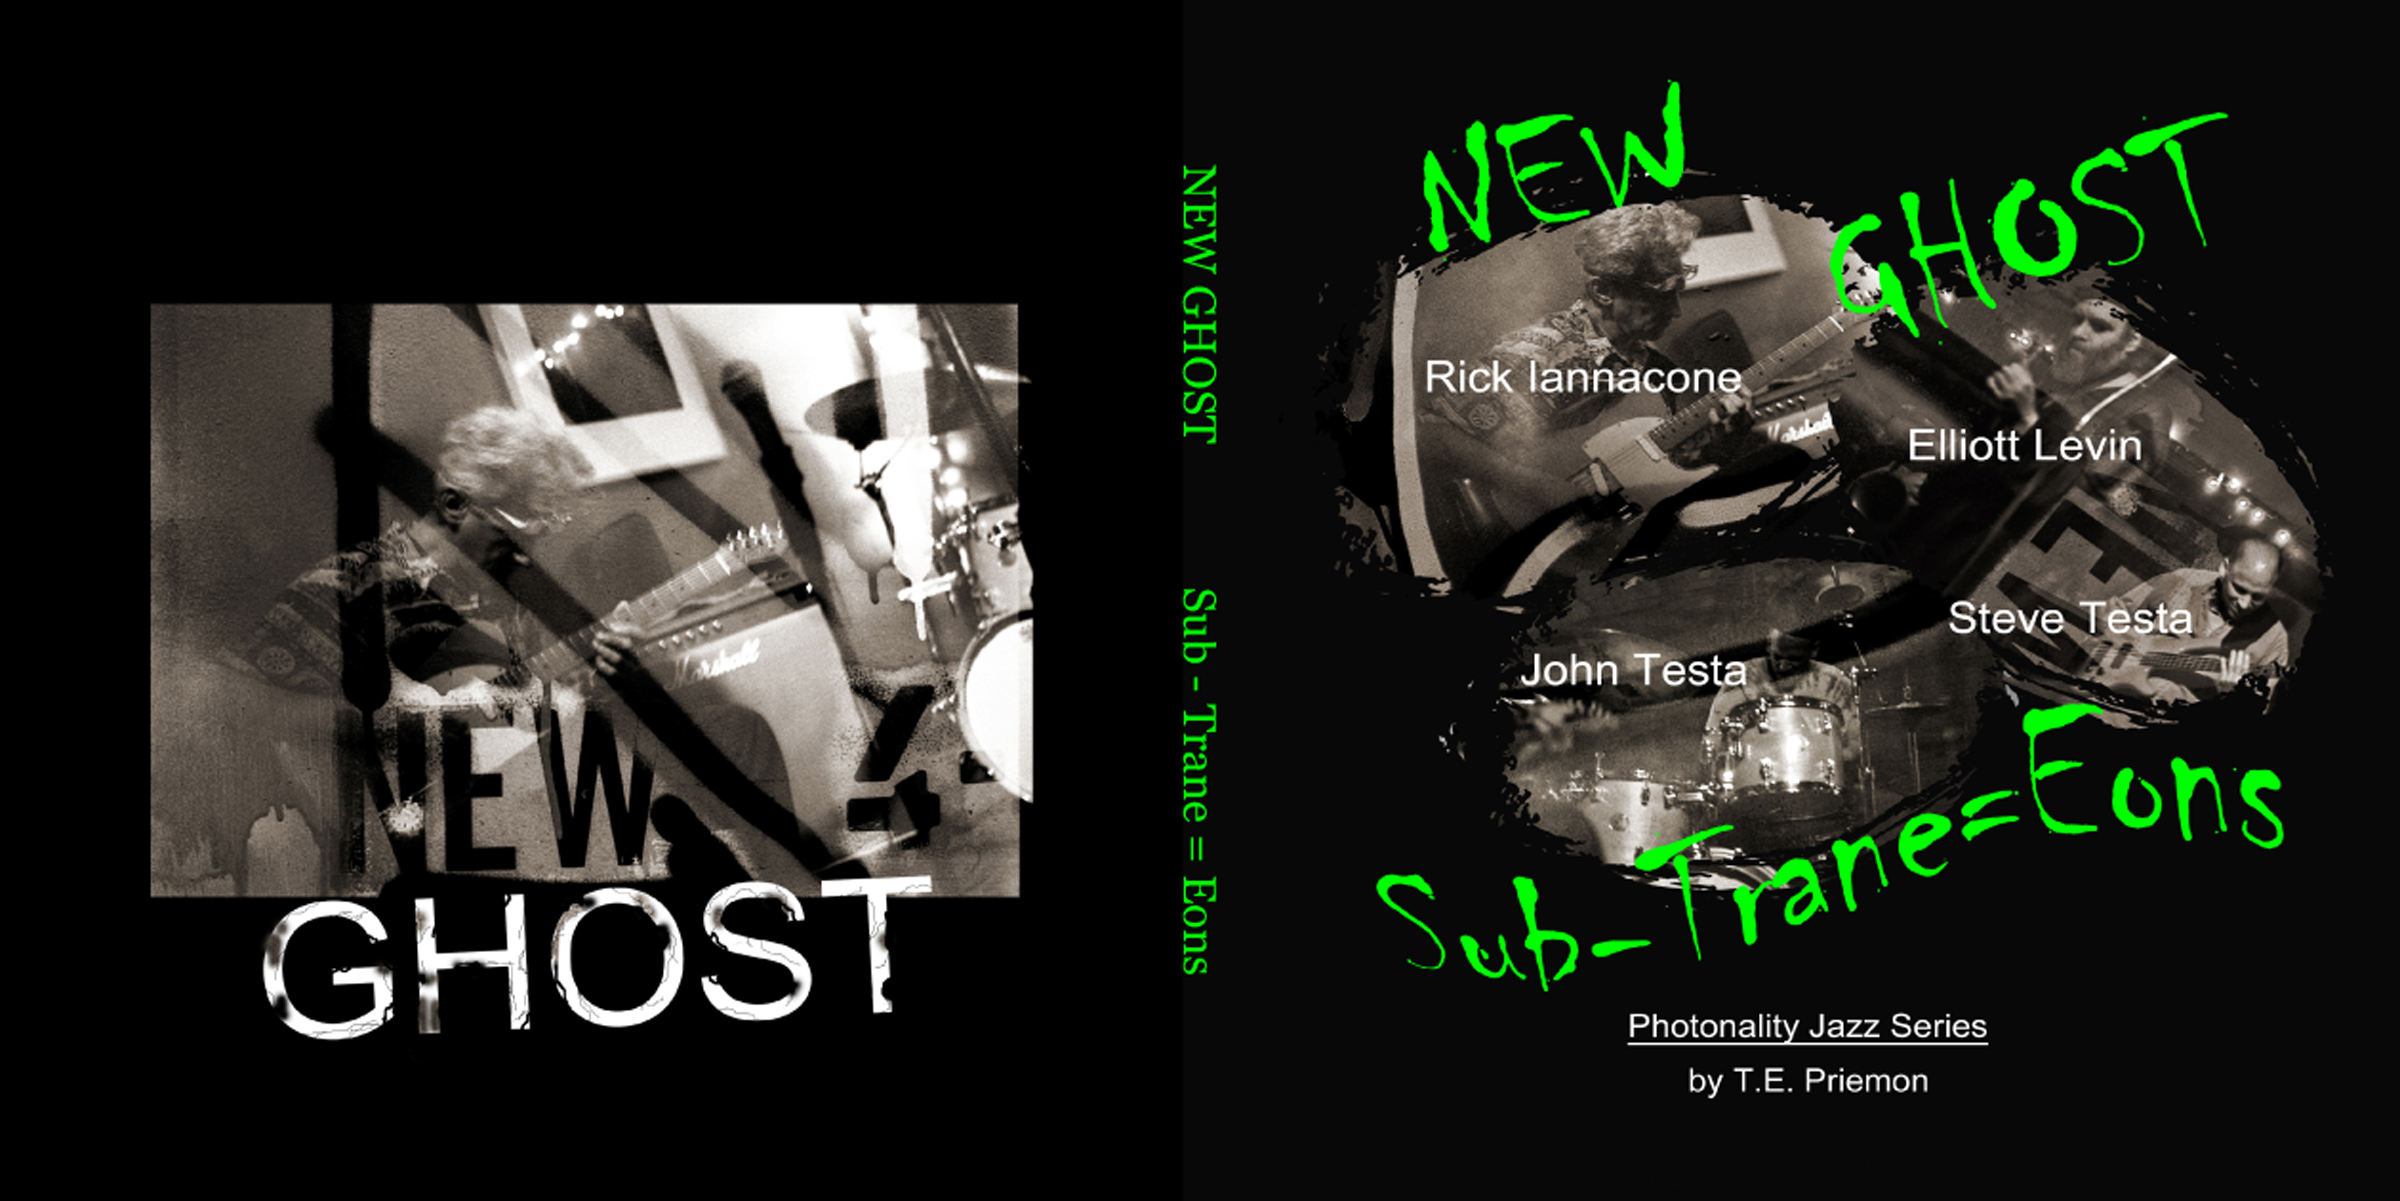 Sub-Trane-Eons with New Ghost